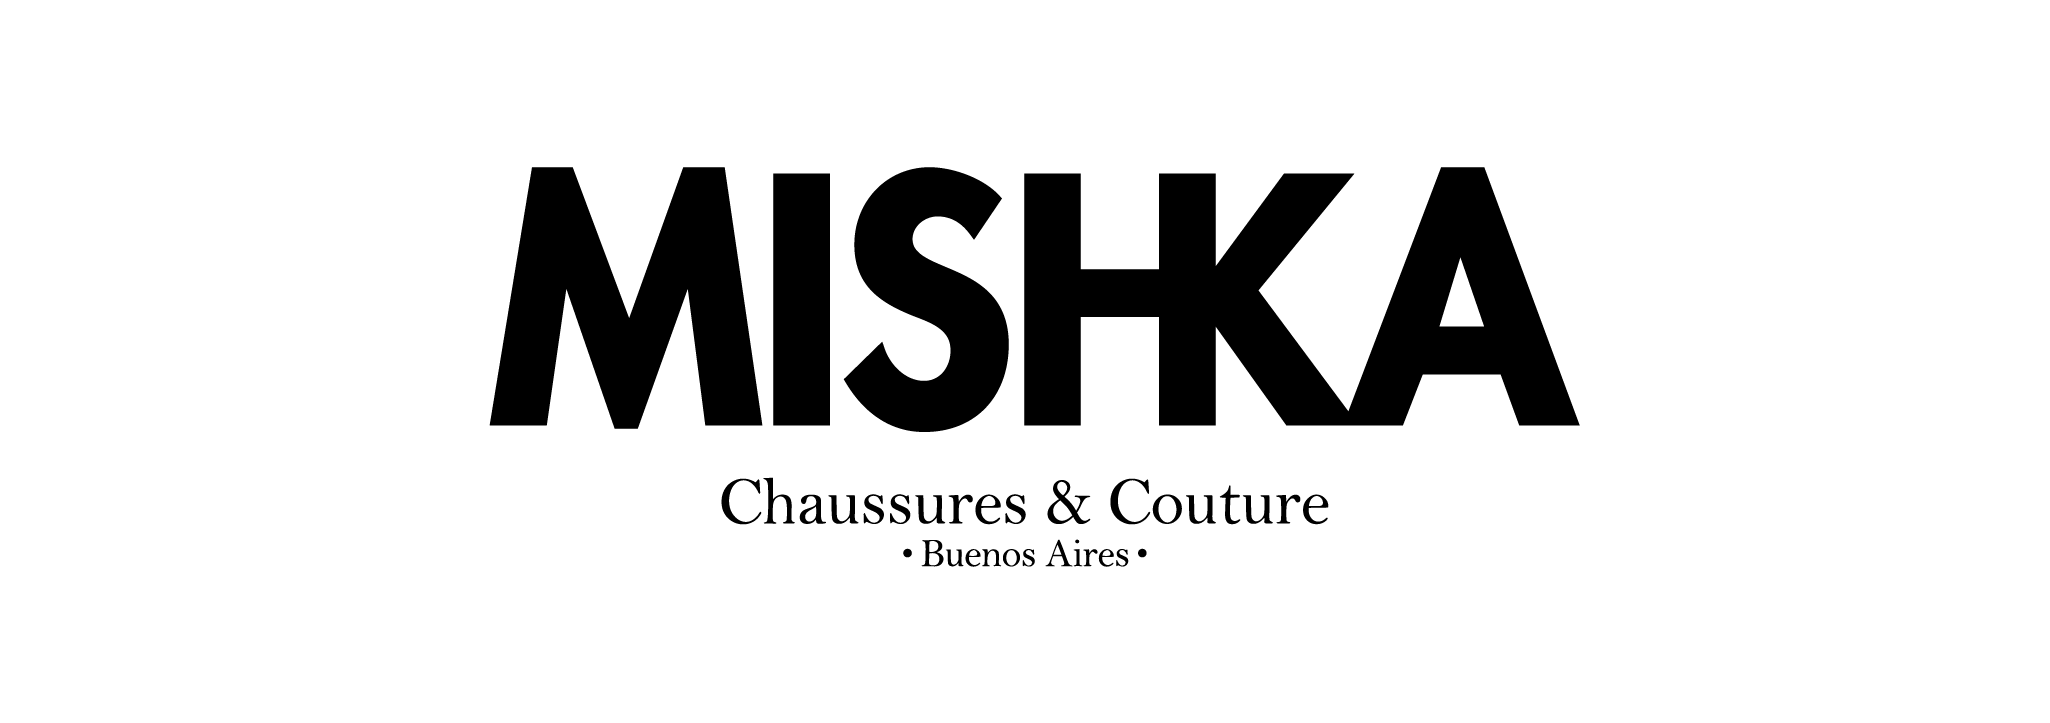 Mishka Journal